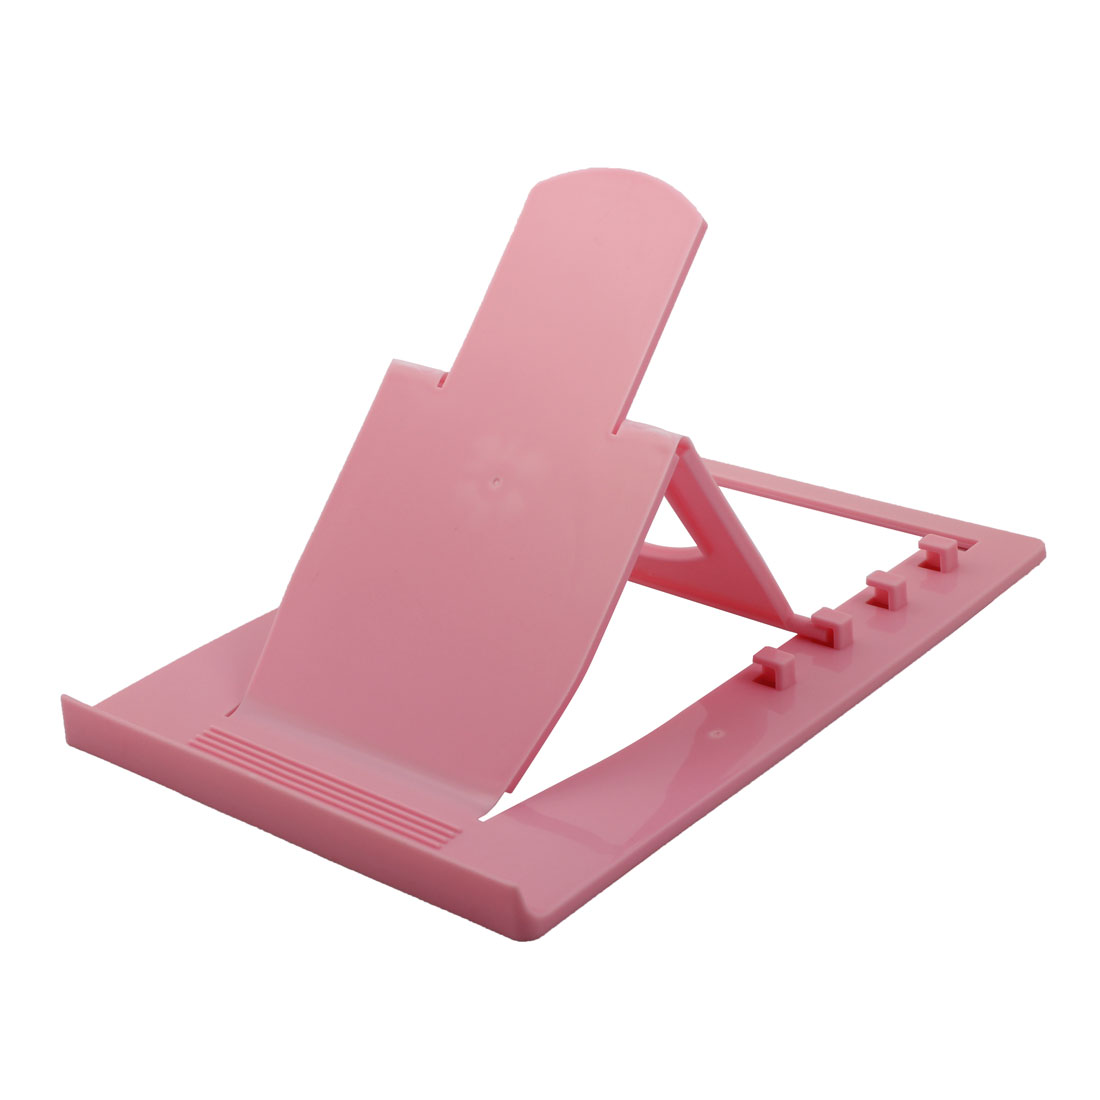 Tablet PC Desk Plastic 4 Slots Adjustable Foldable Stand Bracket Holder Pink